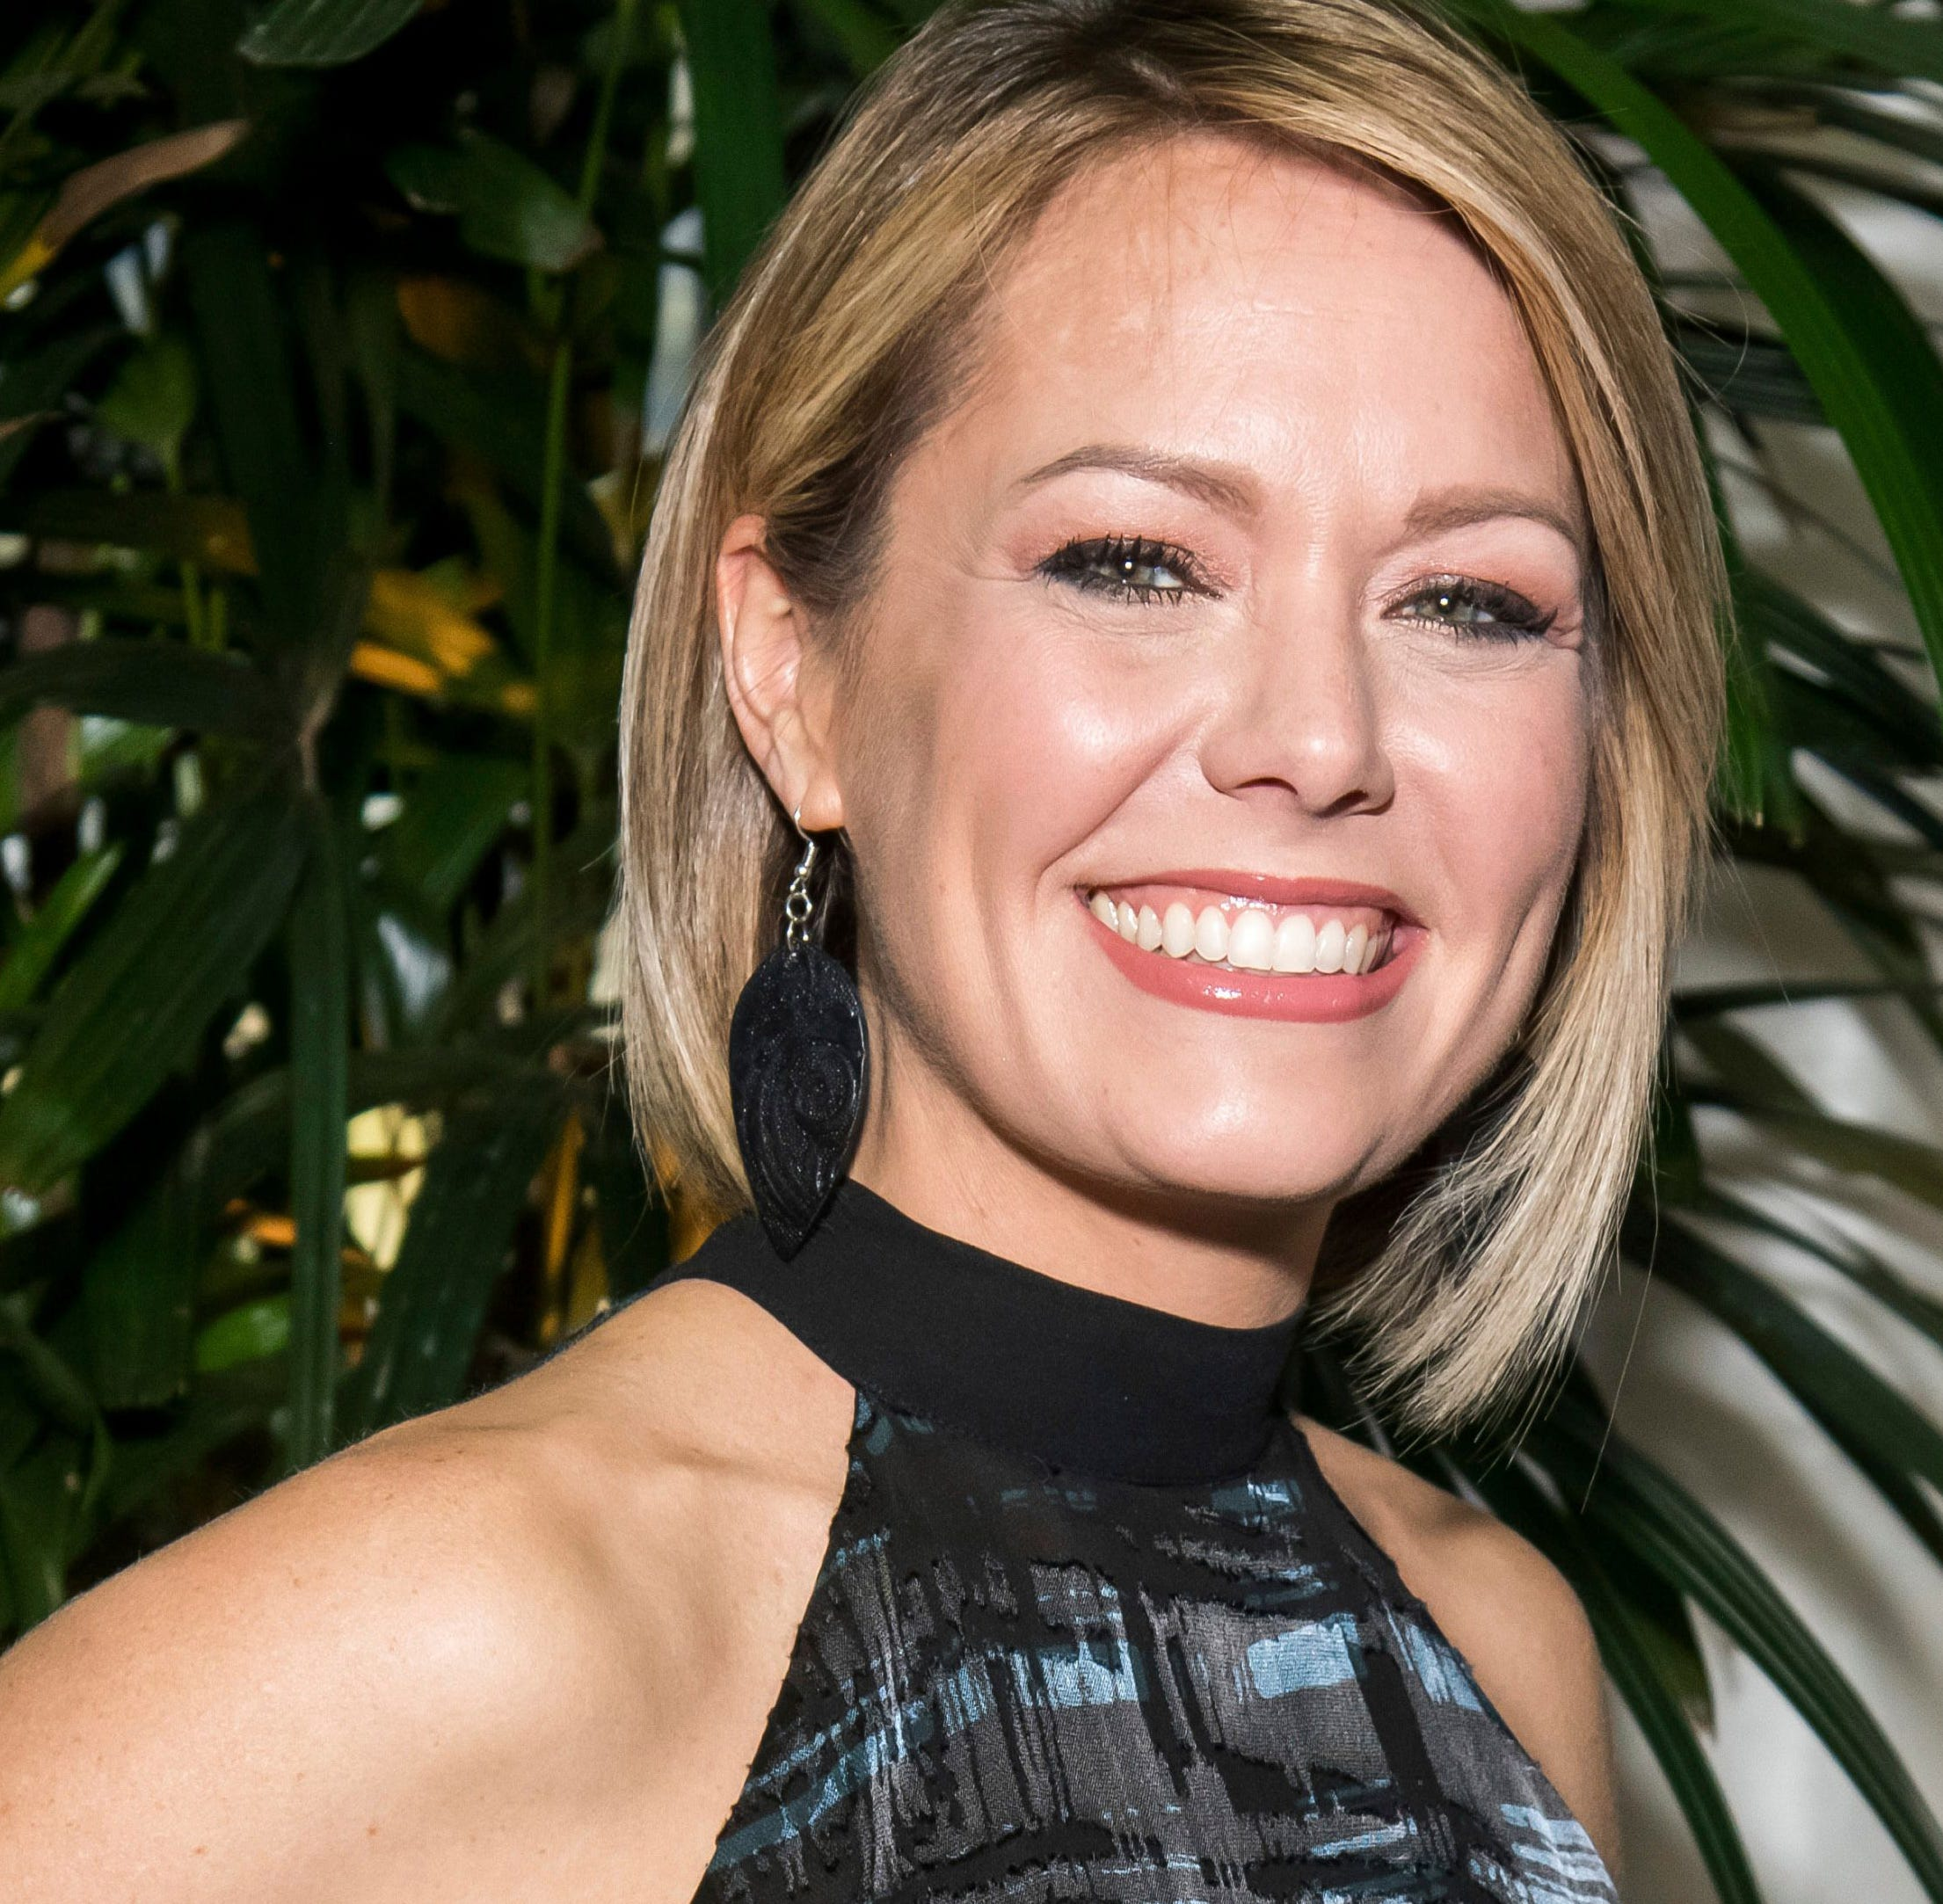 """Today"" show meteorologist Dylan Dreyer has opened up about her and her husband's struggle with infertility, miscarriage."